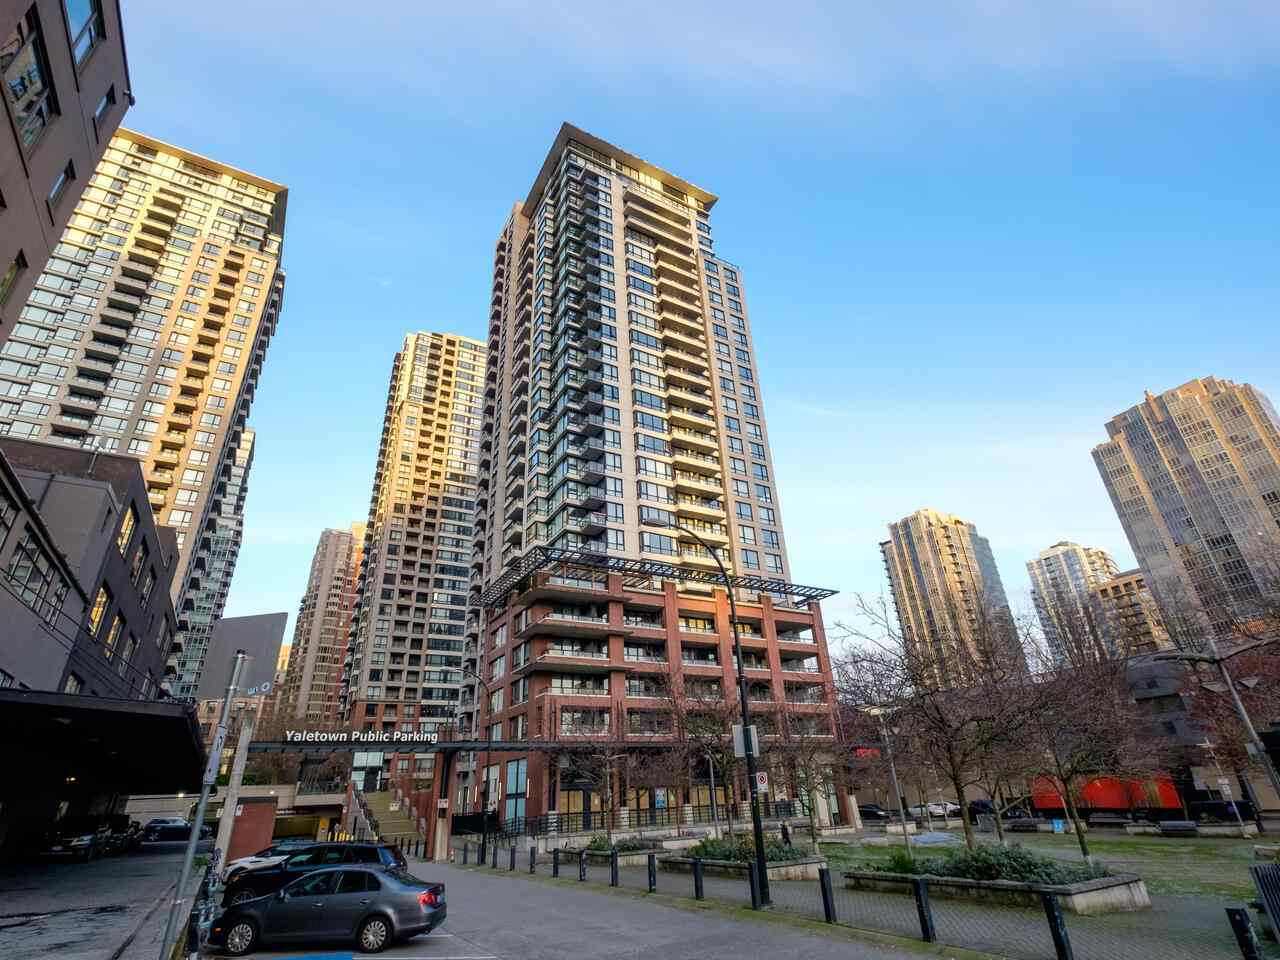 2701 977 MAINLAND STREET - Yaletown Apartment/Condo for sale, 1 Bedroom (R2537101) - #1